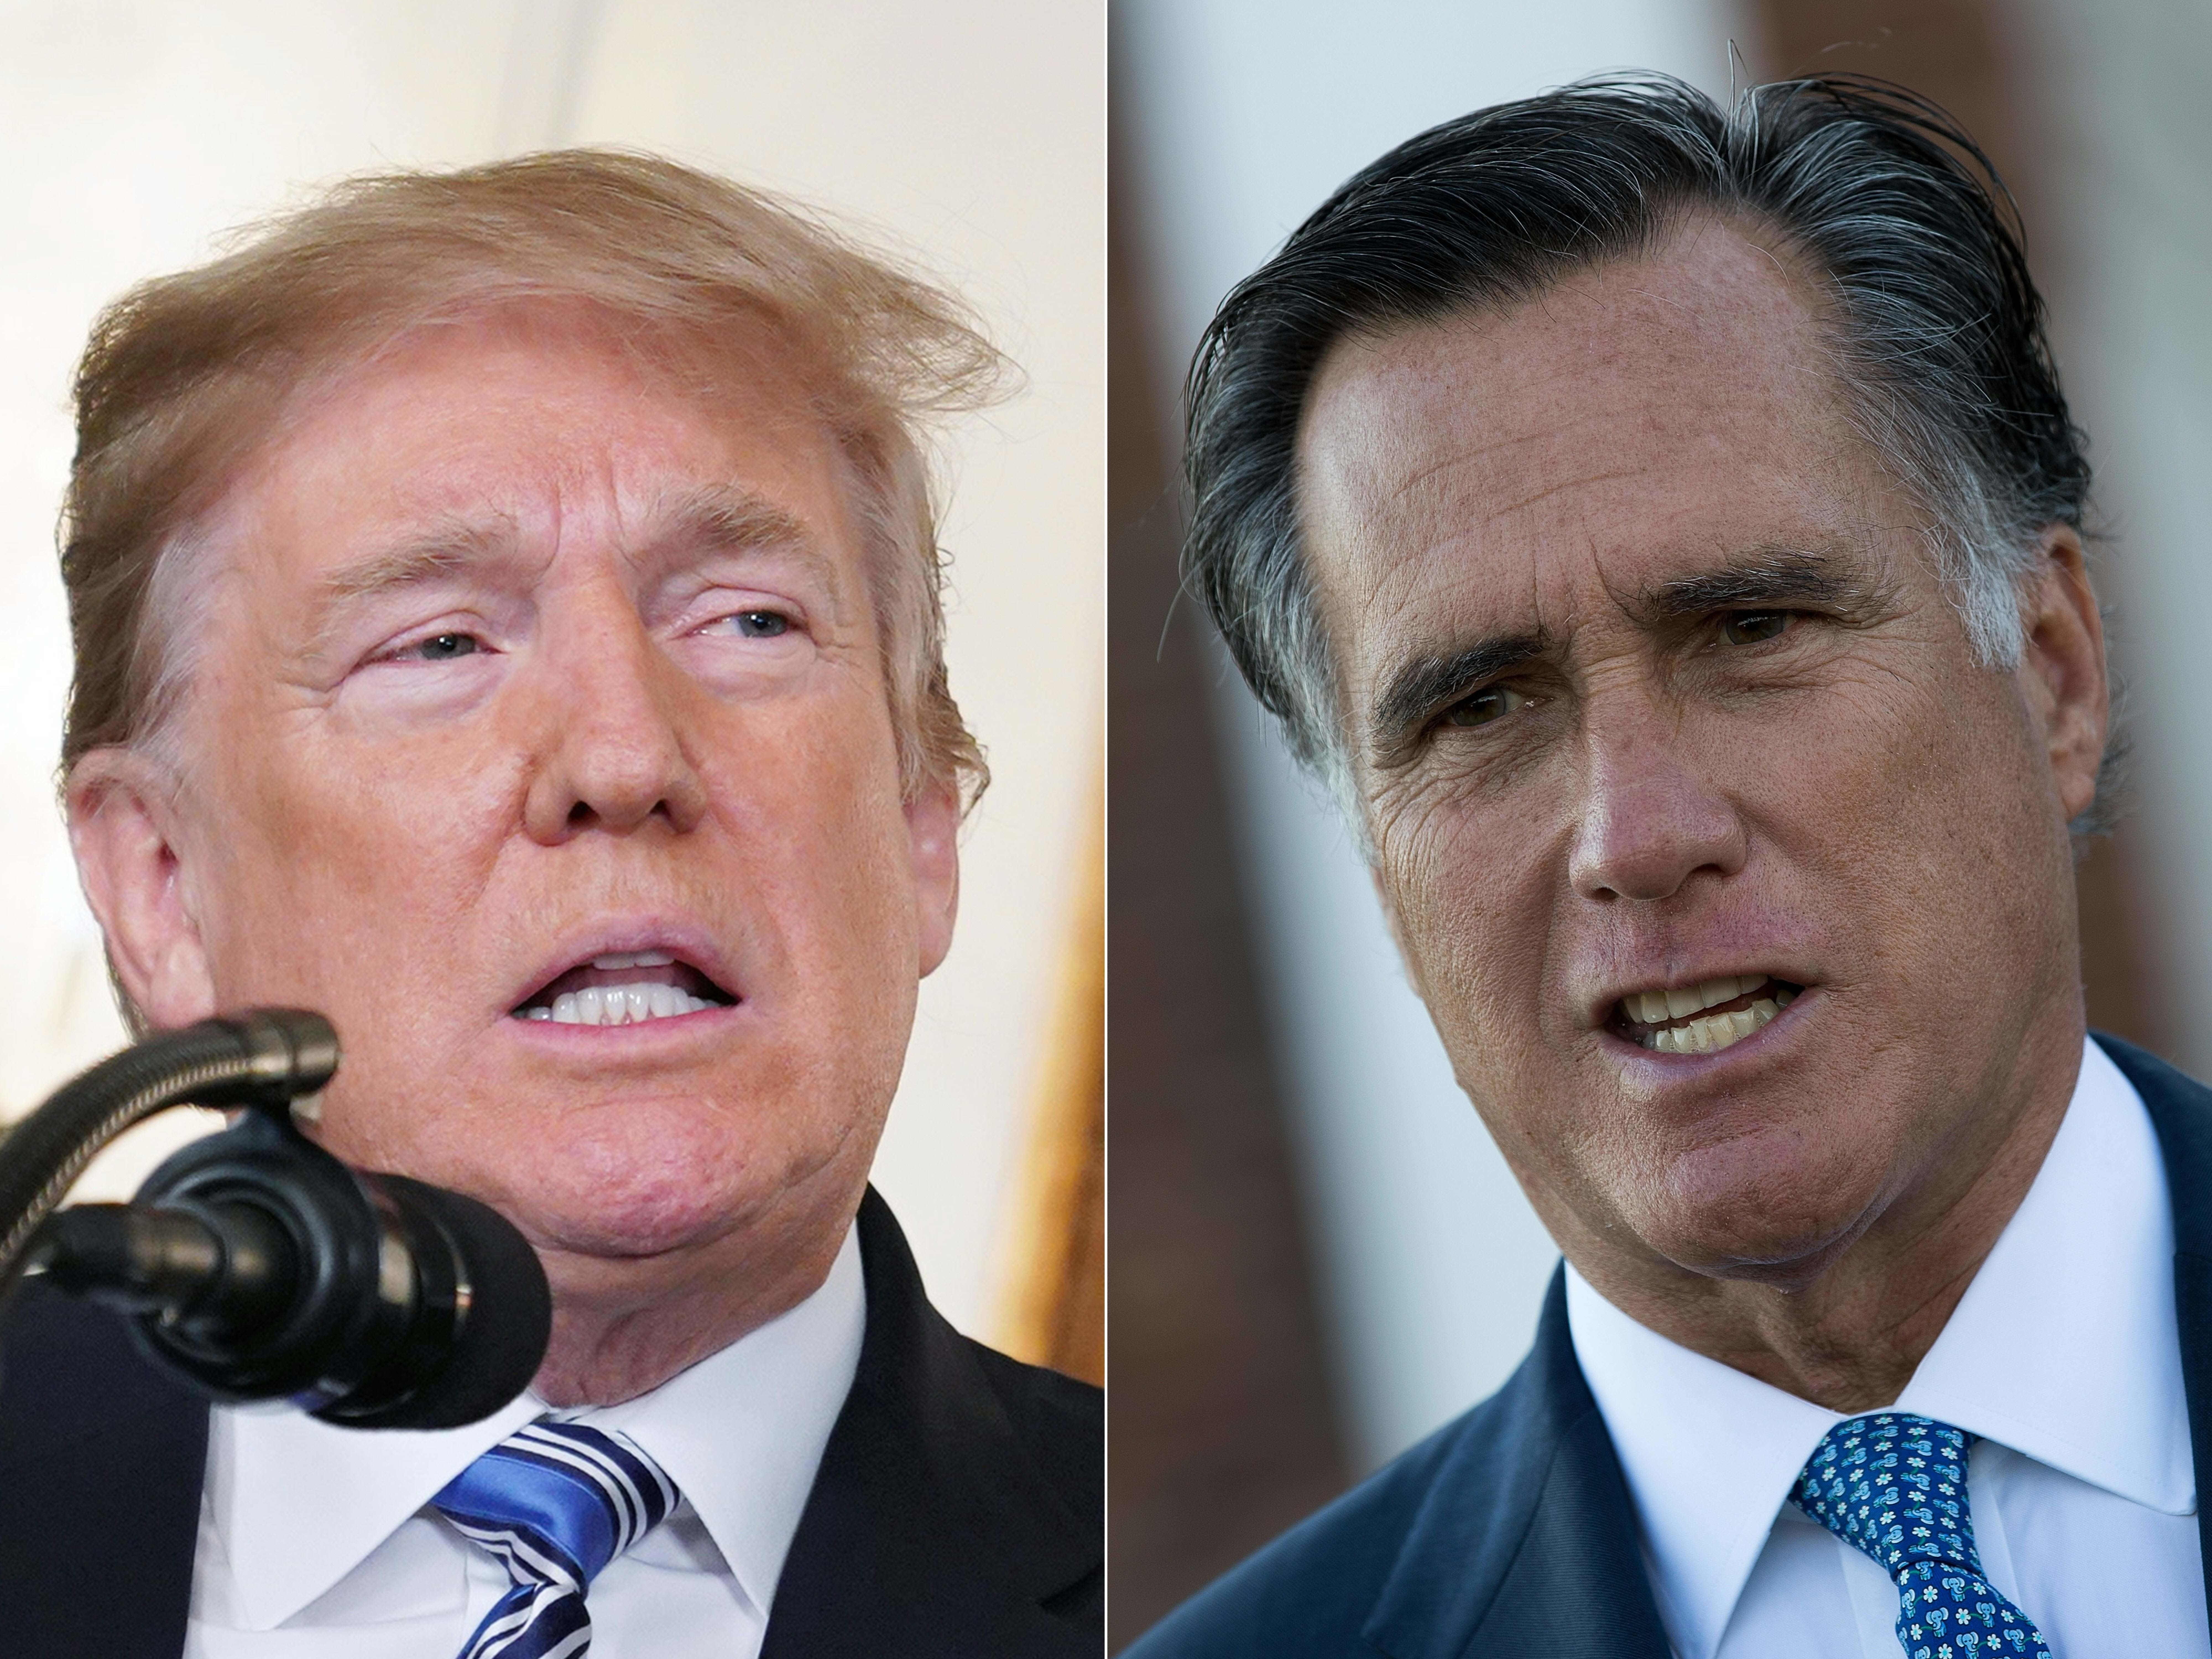 (COMBO) This combination of file pictures created on February 20, 2018 shows US President Donald Trump(L) speaking on the Florida school shooting at the White House on February 15, 2018 in Washington, DC, and Mitt Romney speaking to reporters after his meeting with president-elect Donald Trump at Trump International Golf Club, November 19, 2016 in Bedminster Township, New Jersey.   Donald Trump and Mitt Romney, once one of the president's fiercest critics, have kissed and made up, at least on Twitter .Romney, a wealthy businessman, ex-governor of Massachusetts and the 2012 Republican presidential nominee, announced last week he is running for a US Senate seat in Utah. On February 19, 2018, Trump praised Romney and gave him his backing, with Romney thanking him.   / AFP PHOTO / Drew Angerer AND Mandel NGAN        (Photo credit should read DREW ANGERER,MANDEL NGAN/AFP/Getty Images)